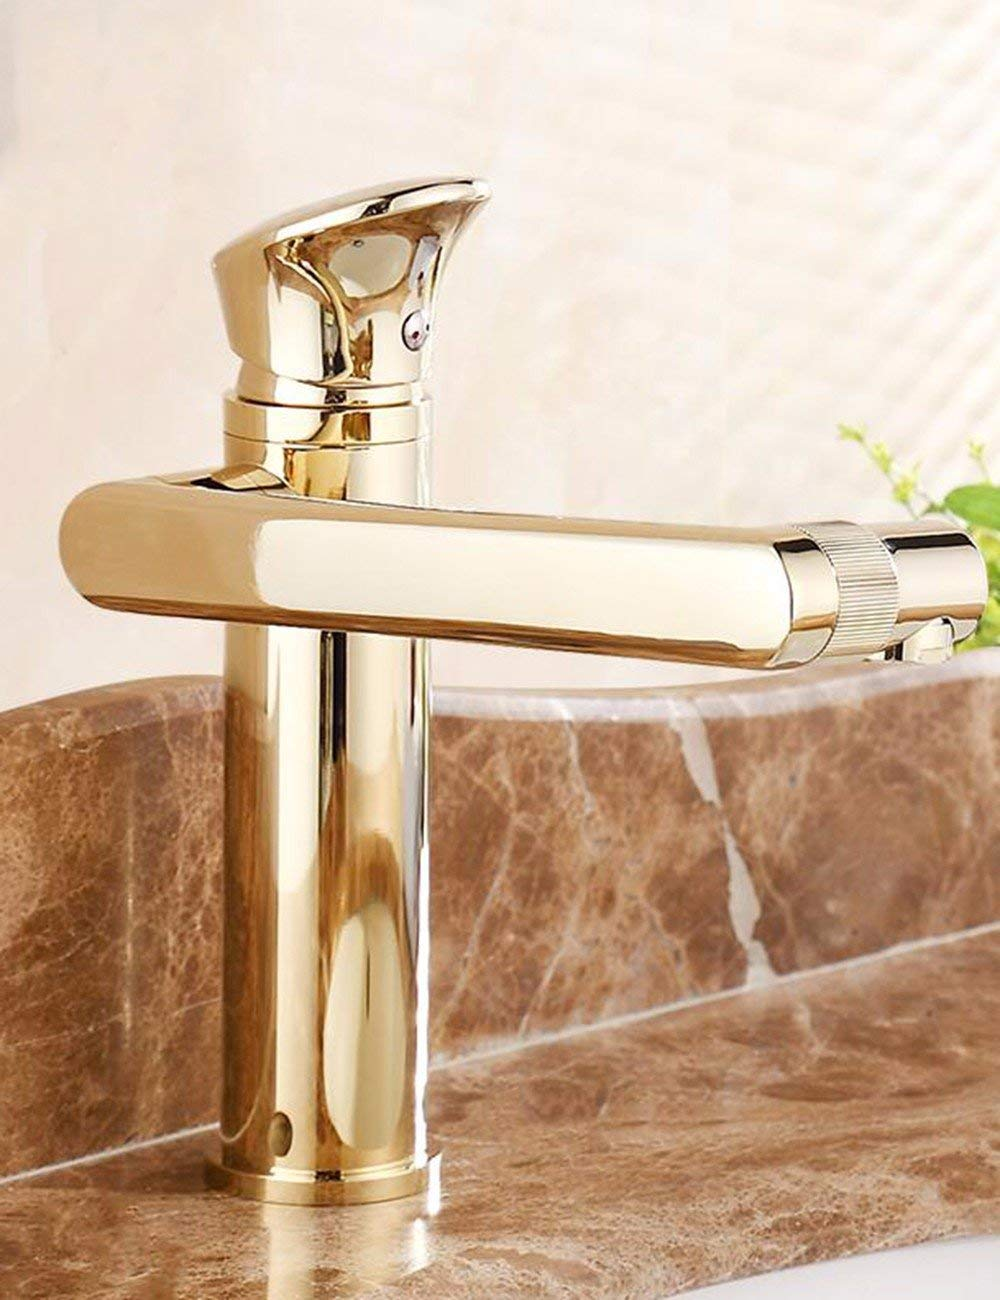 Oudan Basin Mixer Tap Bathroom Sink Faucet Water faucet basin faucet single hole hot and cold basin mixer rotation faucet gold continental antique faucet, silver (Color : The High-gold)